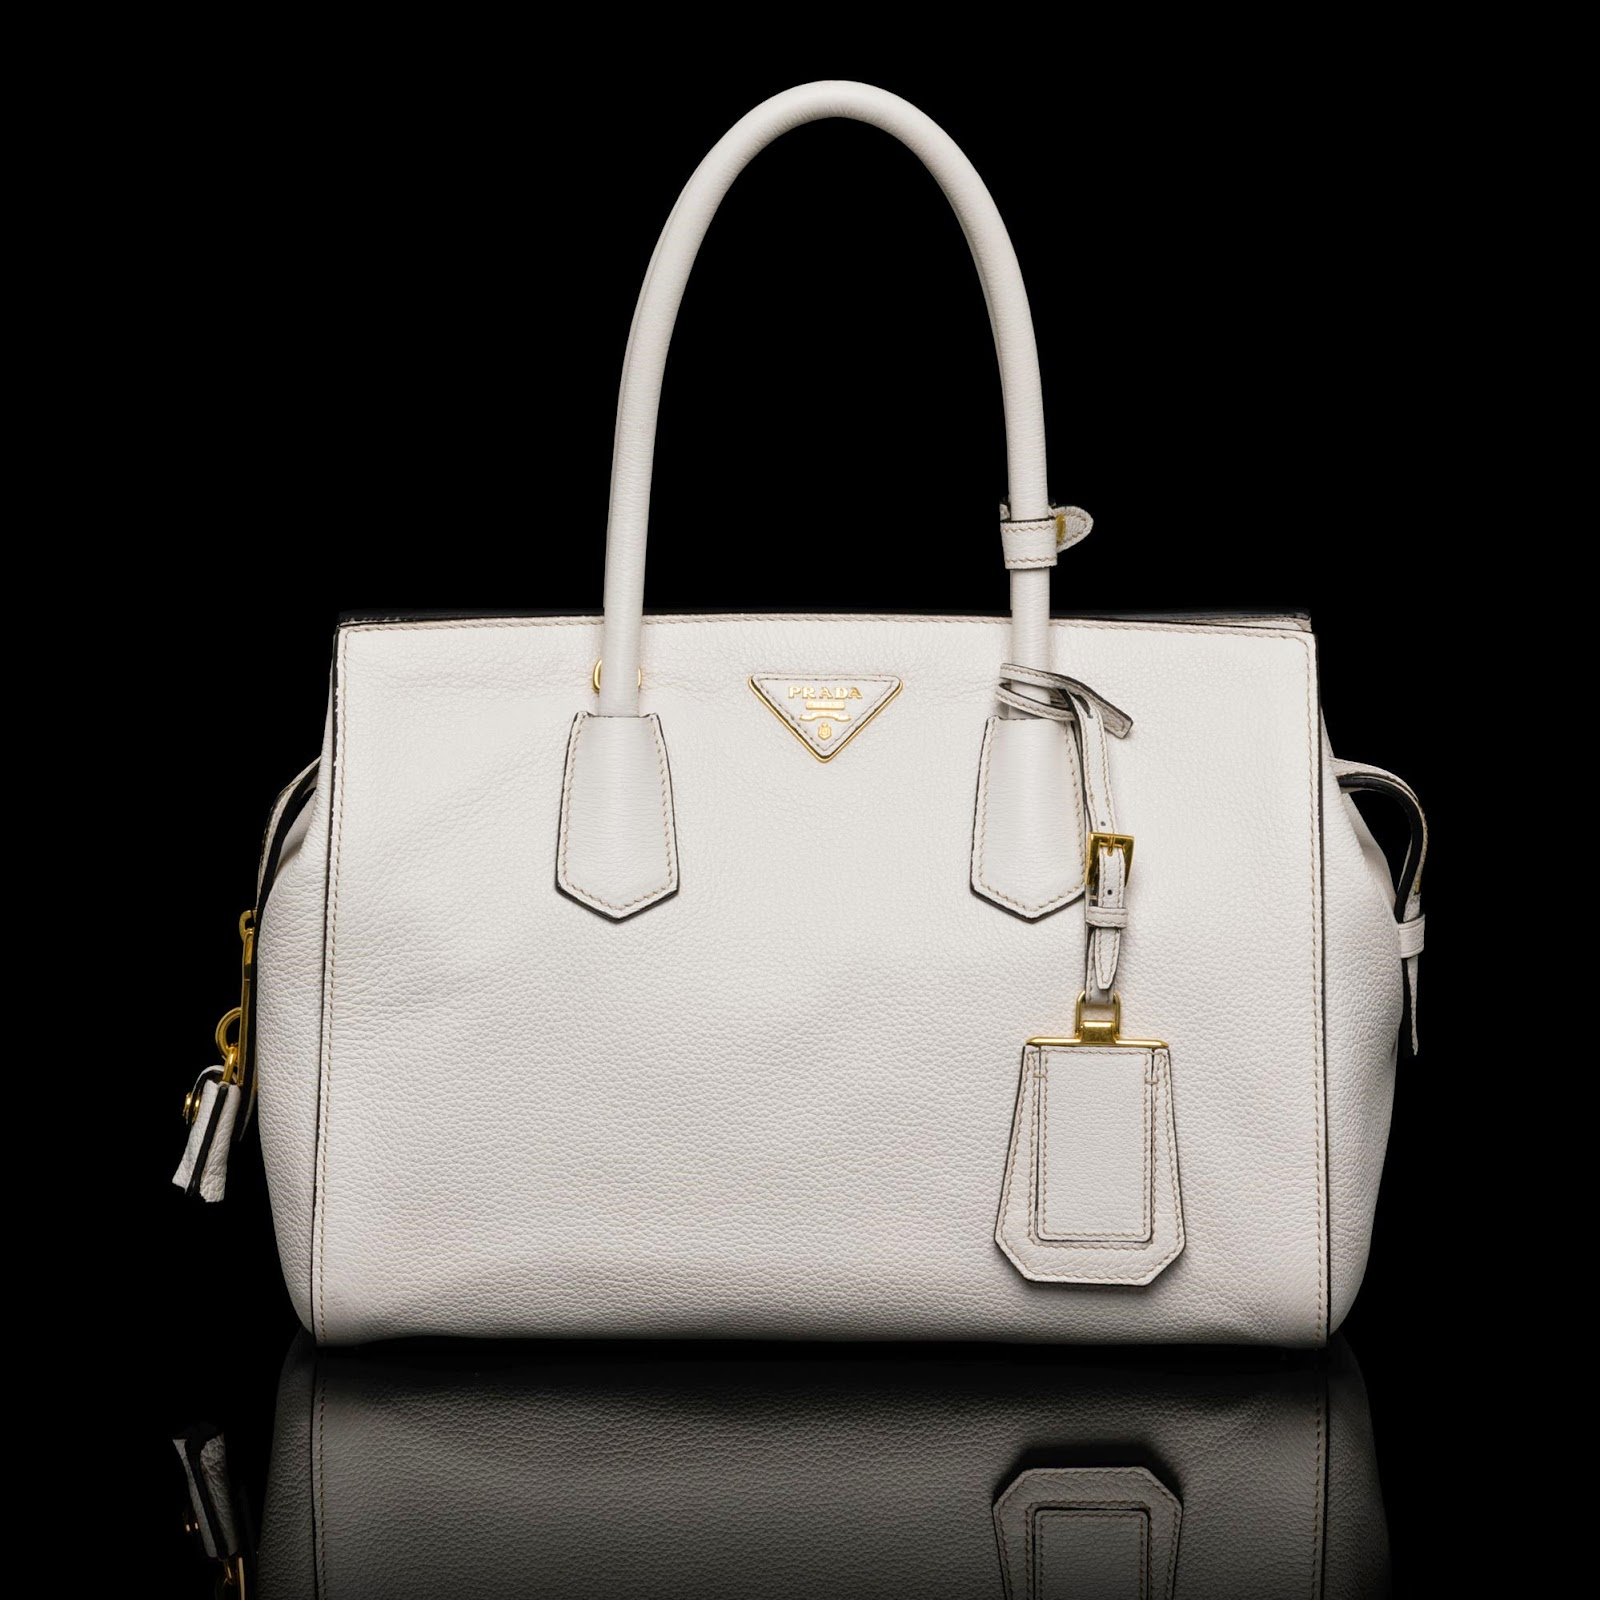 latest prada bag - Neo LUXuries: PRADA Medium Vitello Daino Calf Leather Top-Handle ...